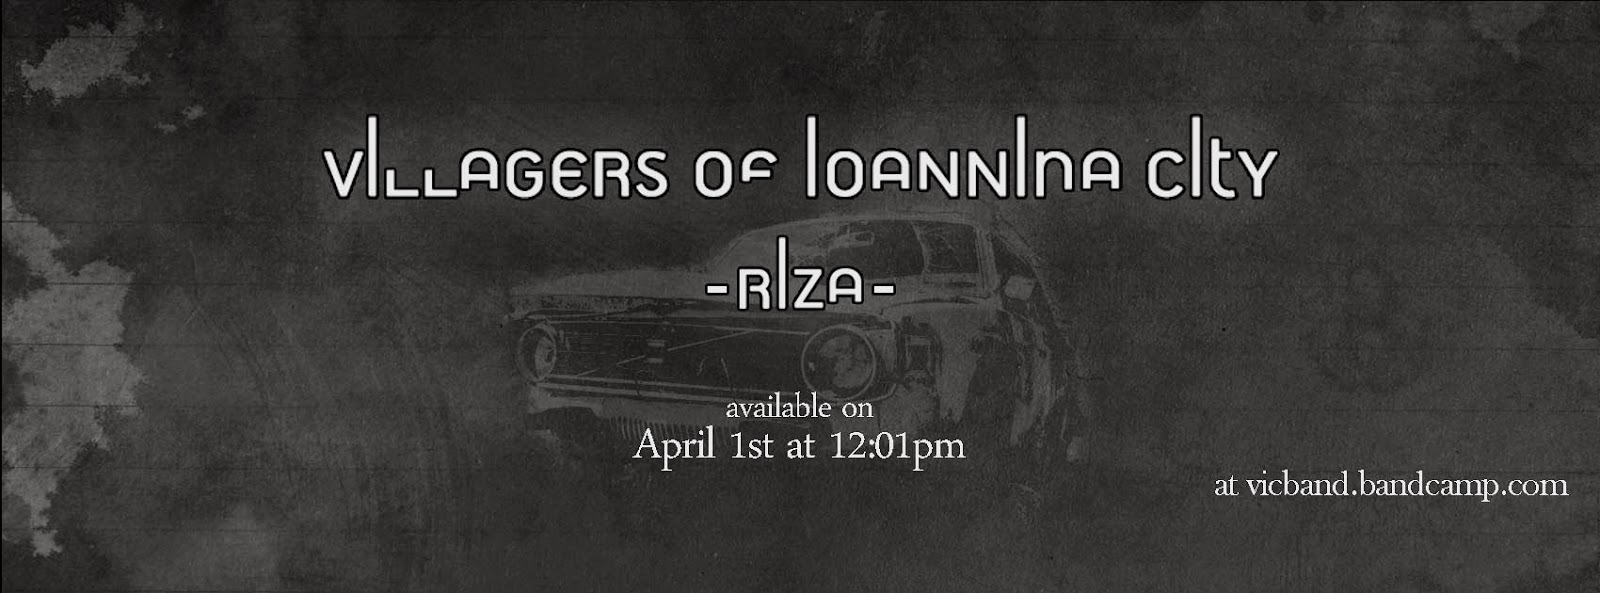 Villagers of Ioannina City - Riza